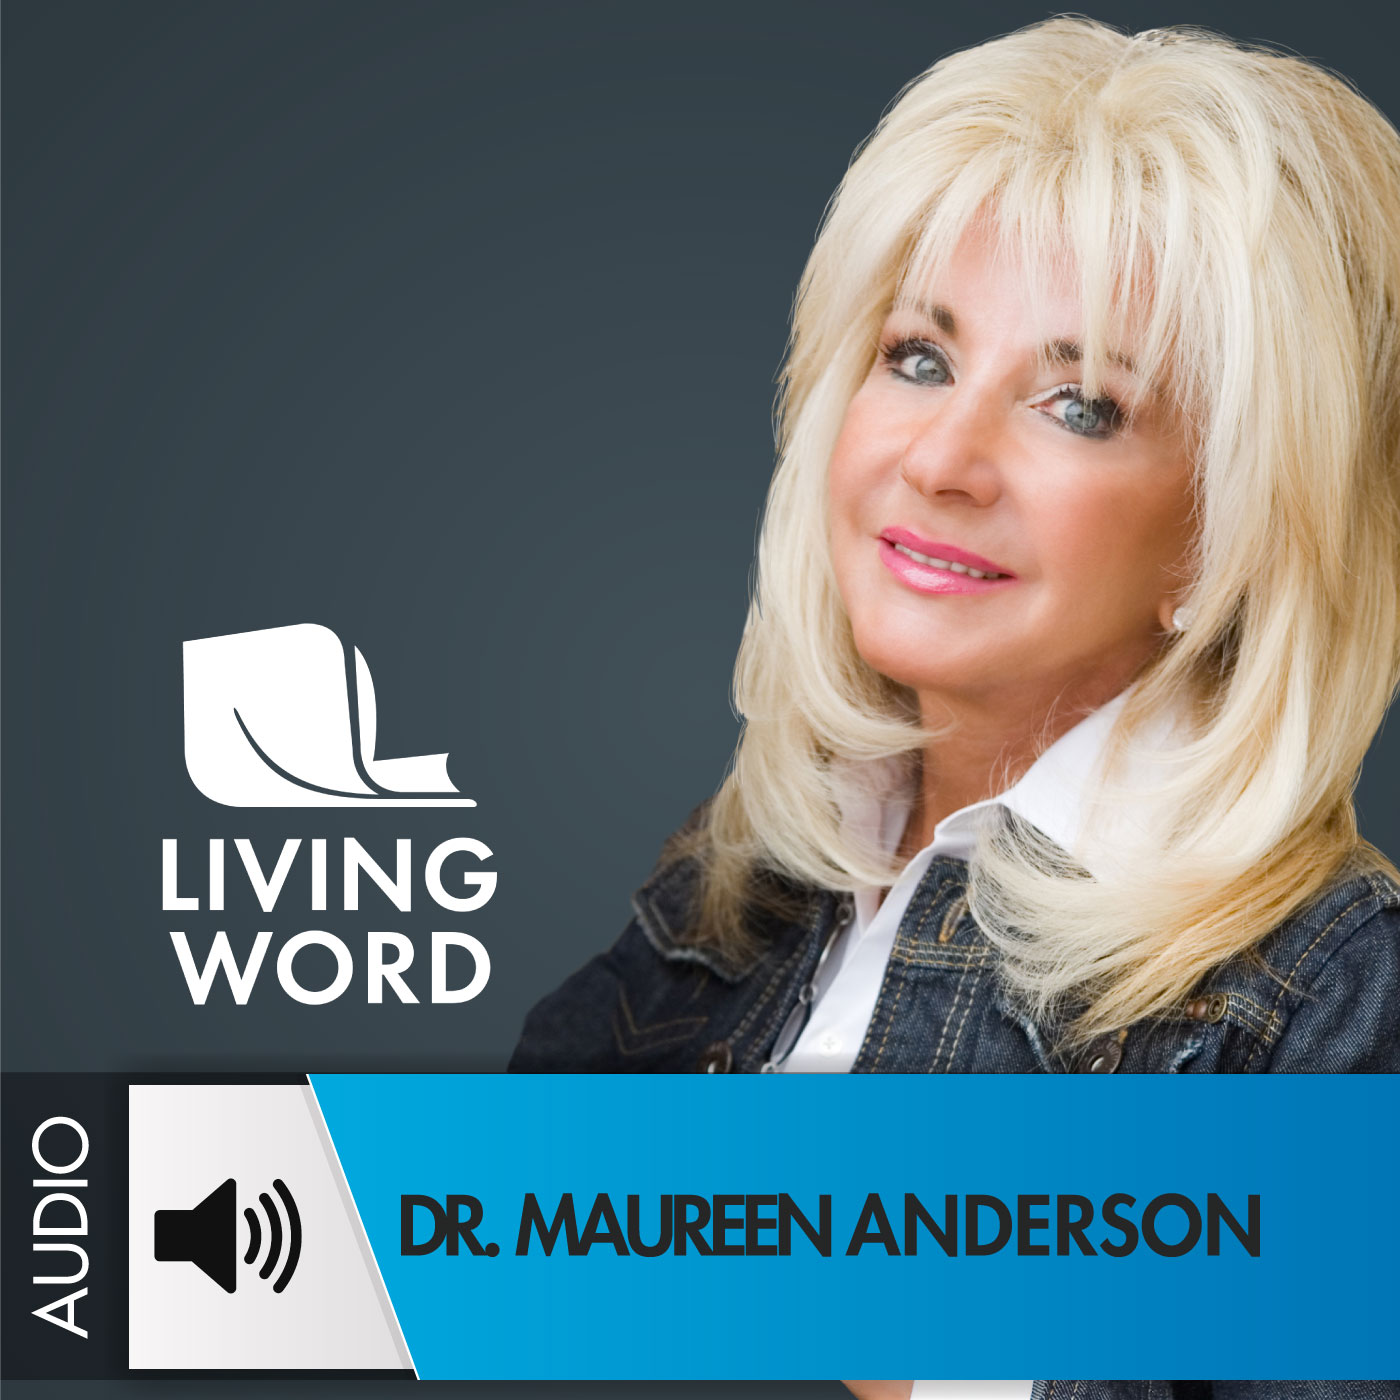 Dr. Maureen Anderson